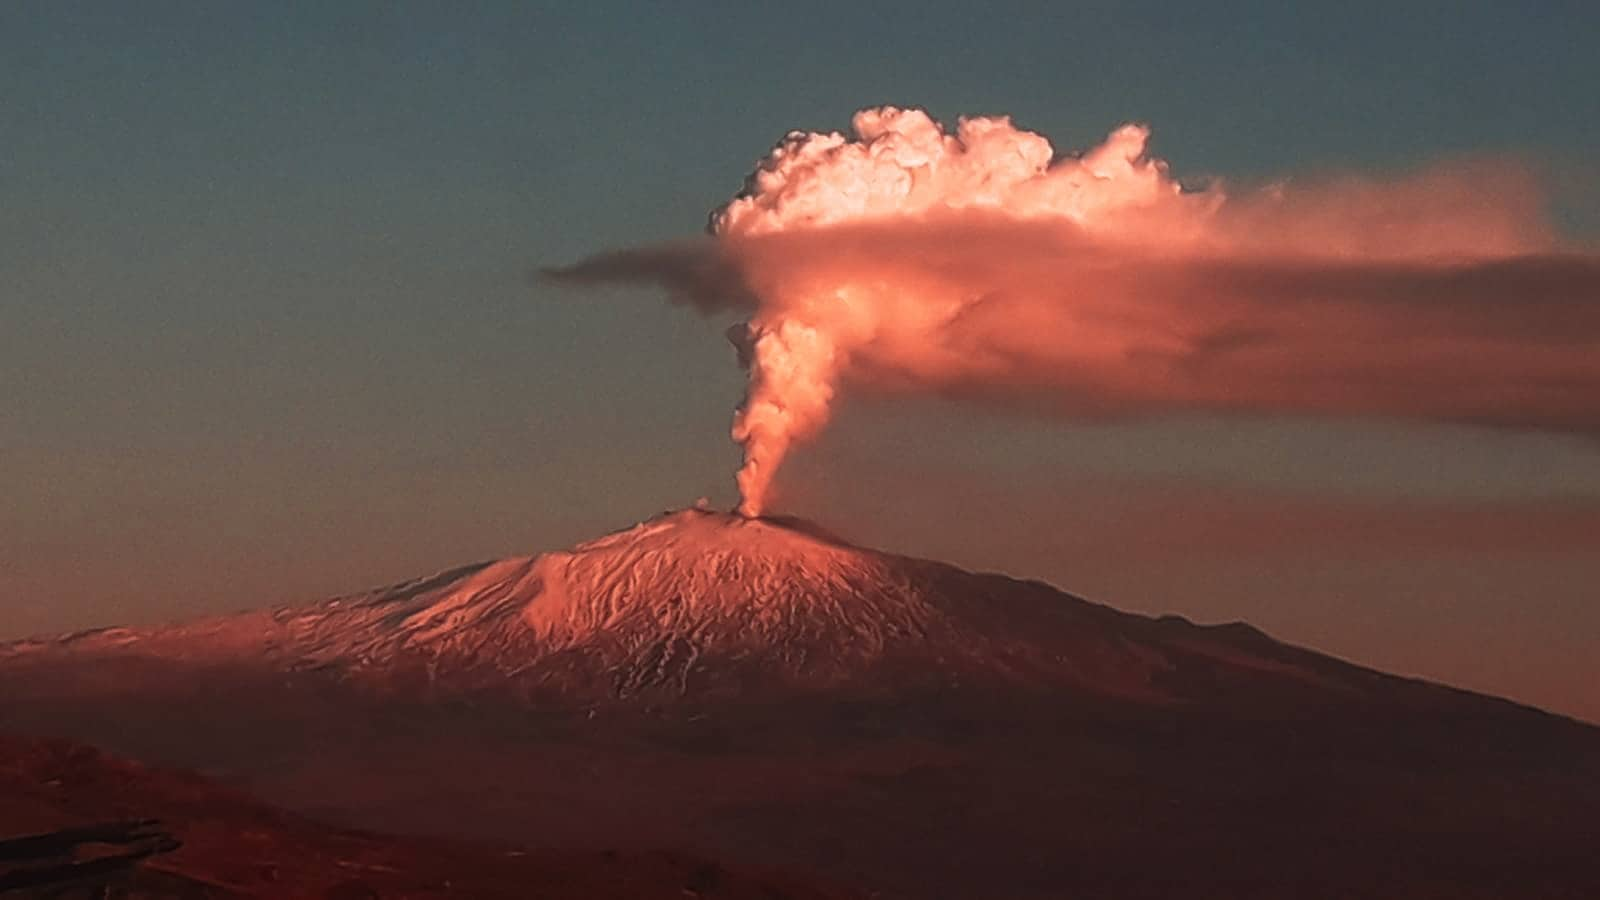 Mount-Etna-sunset-weather-photo.jpg